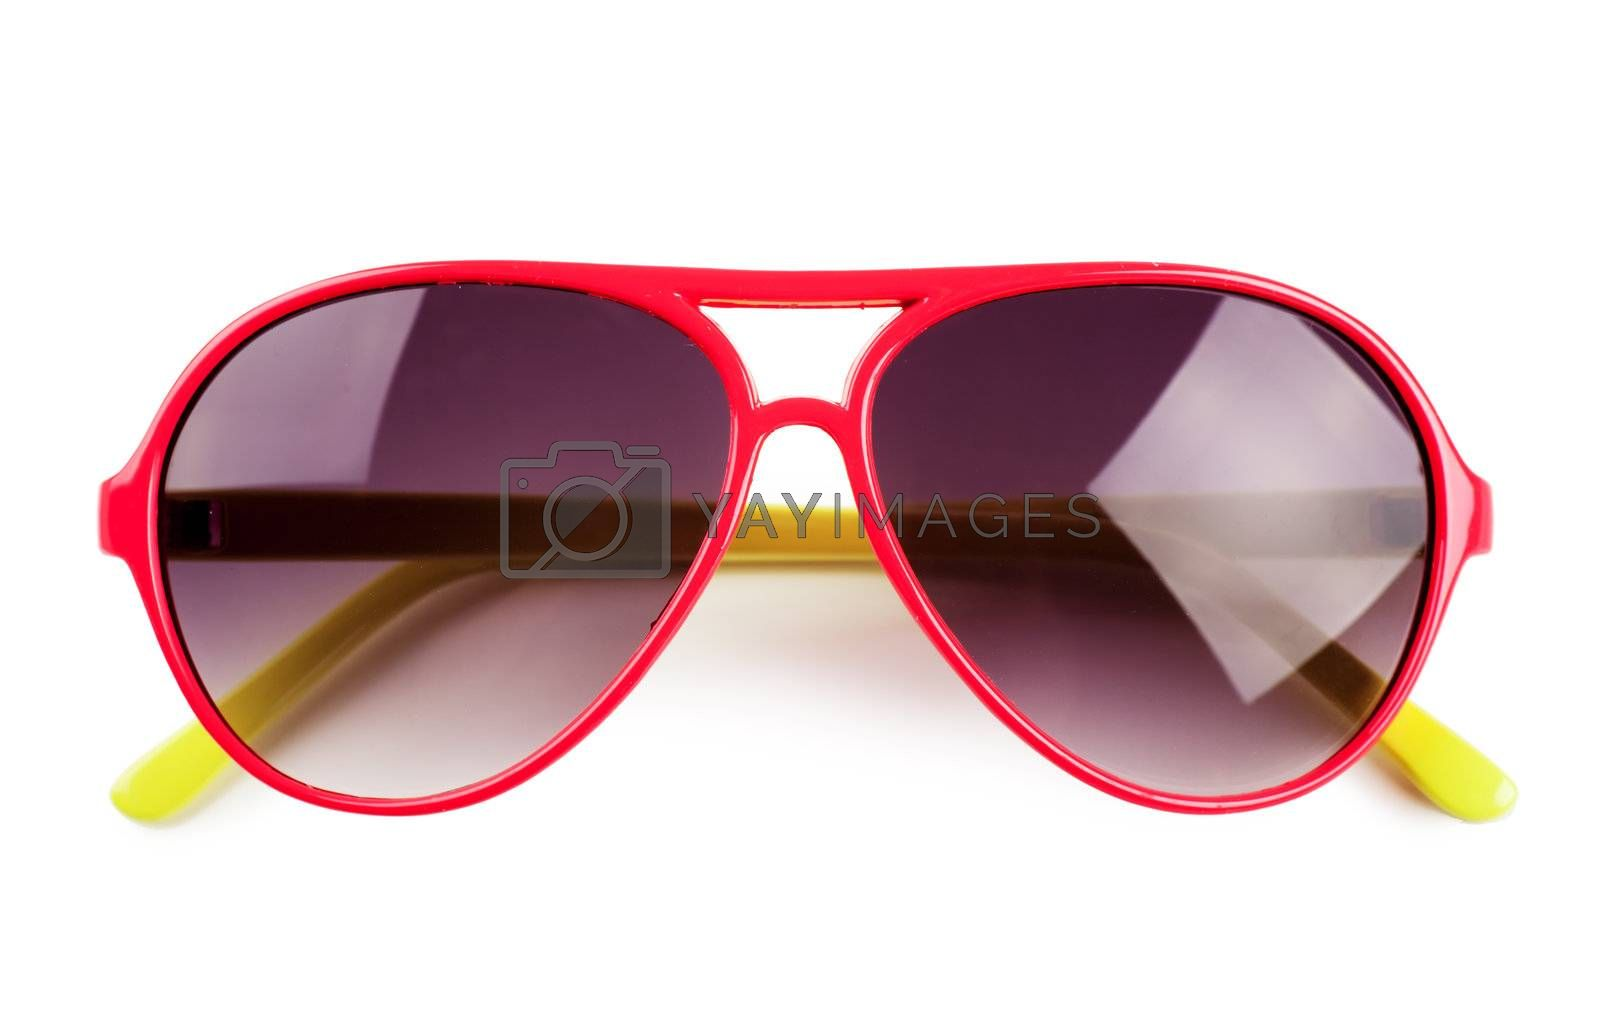 Closeup view of sunglasses isolated over white background